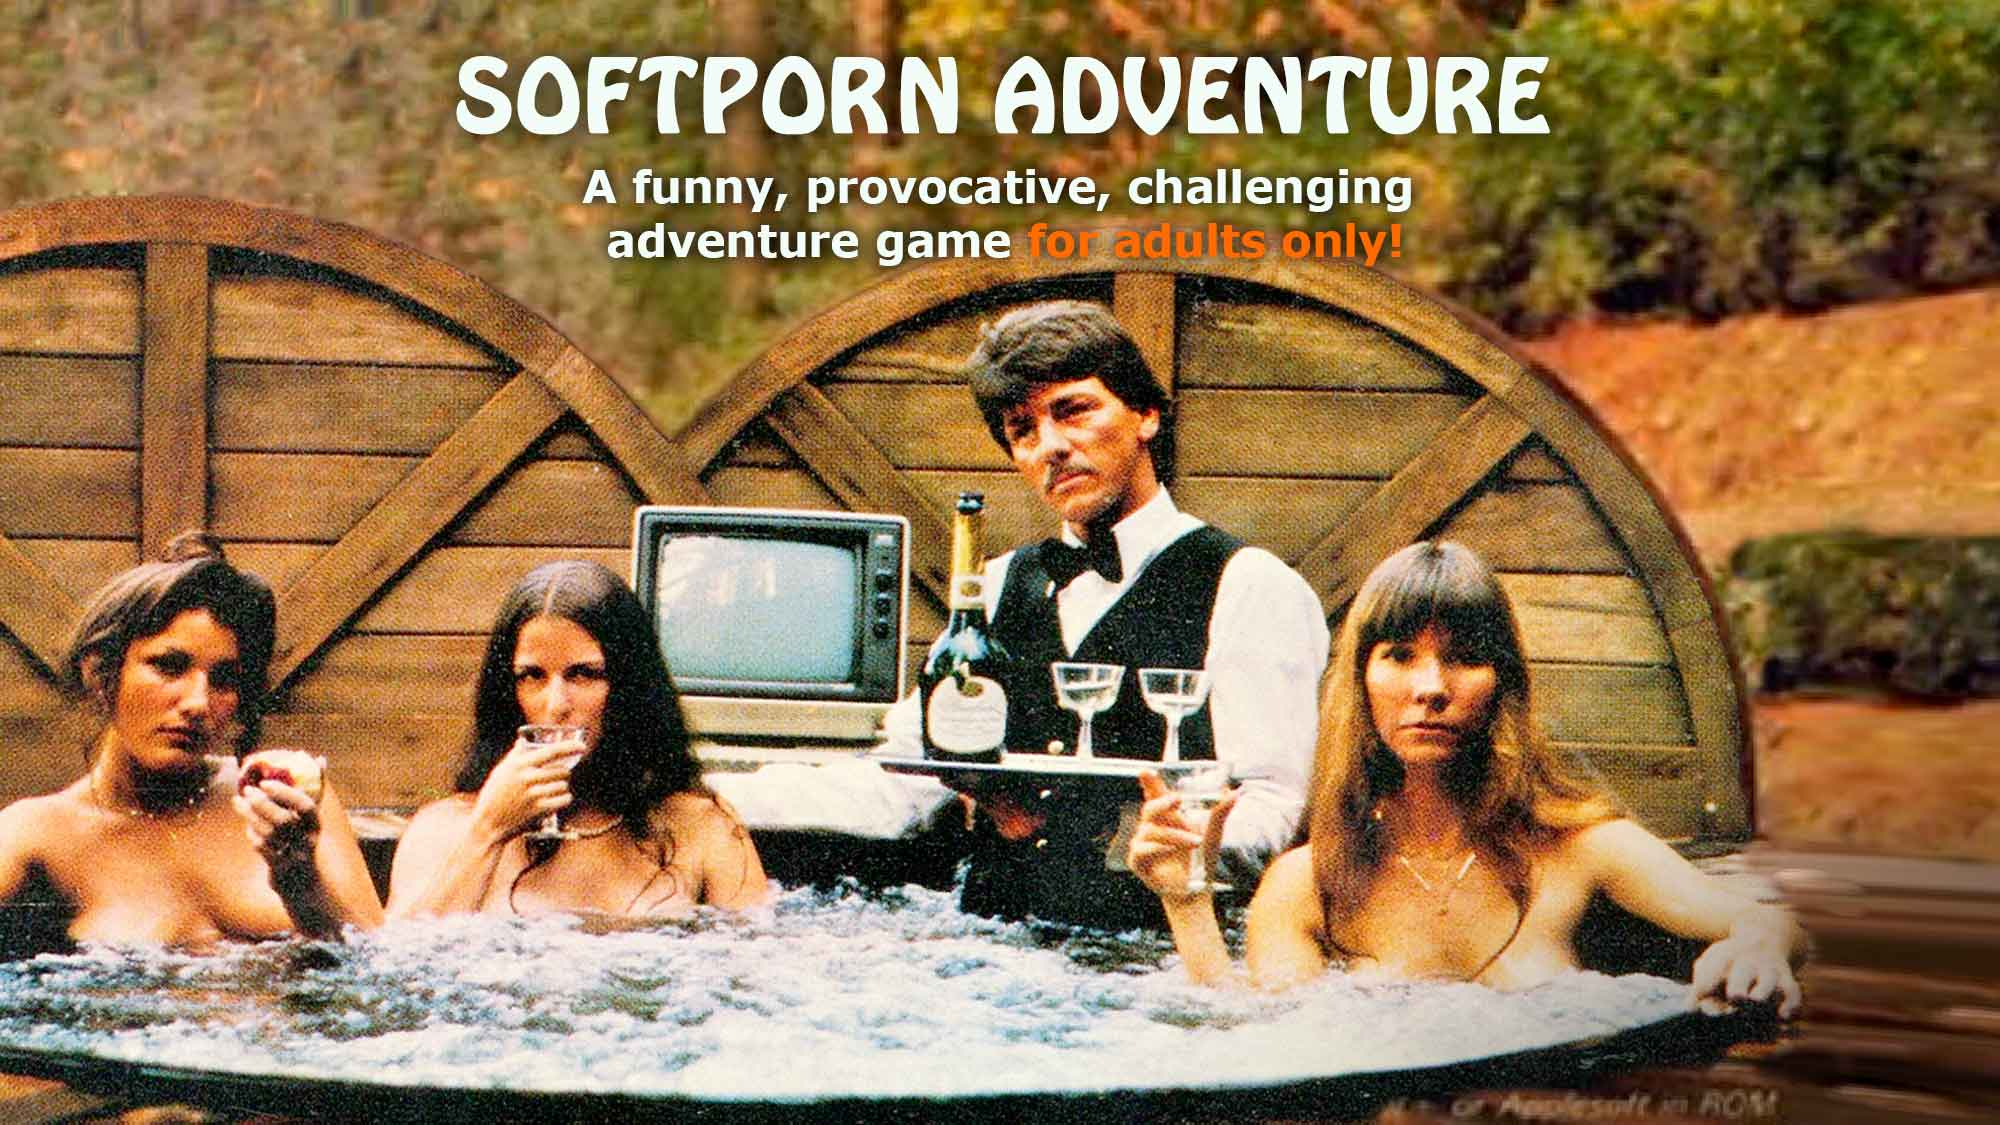 Softporn Adventure: 9 Things You Probably Didn't Know About The First Erotic Computer Game